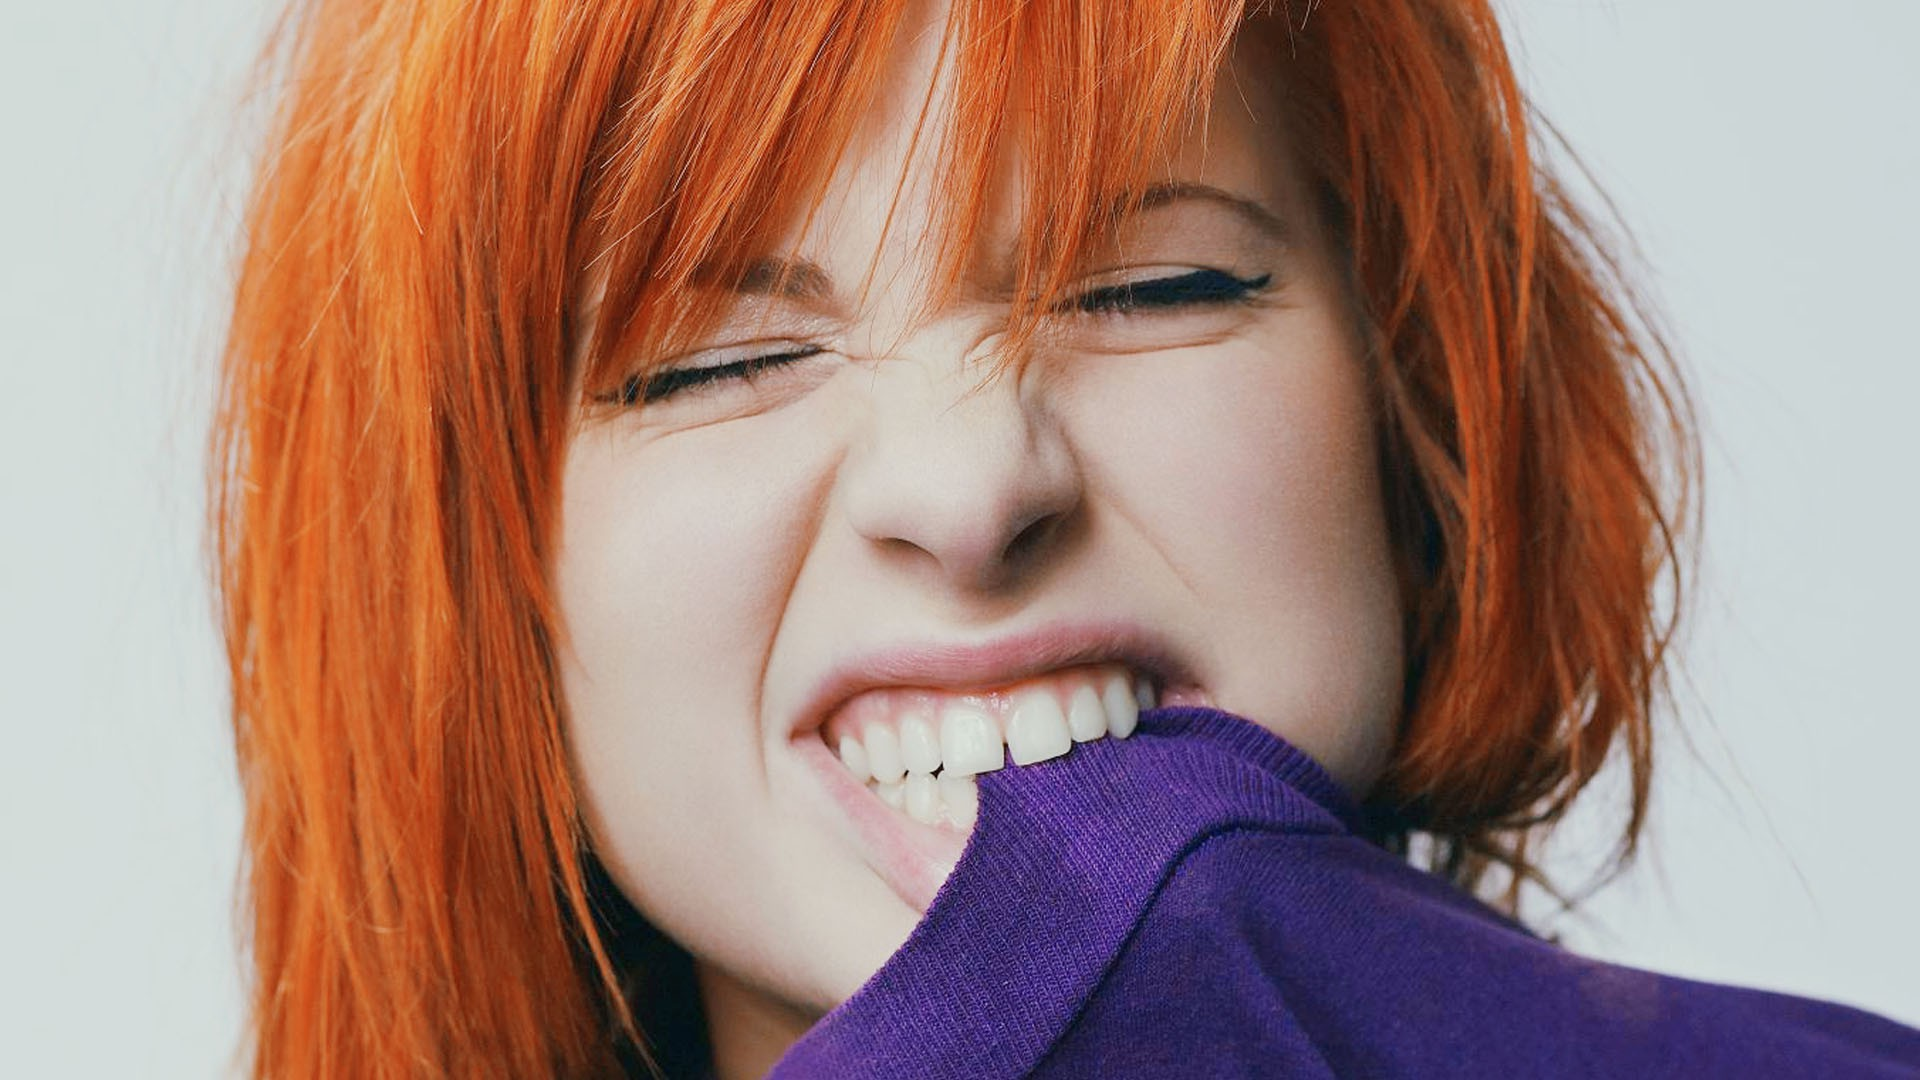 Hayley Williams Cute Wallpaper Hayley Williams Free Hd Wallpapers Amp Background Download